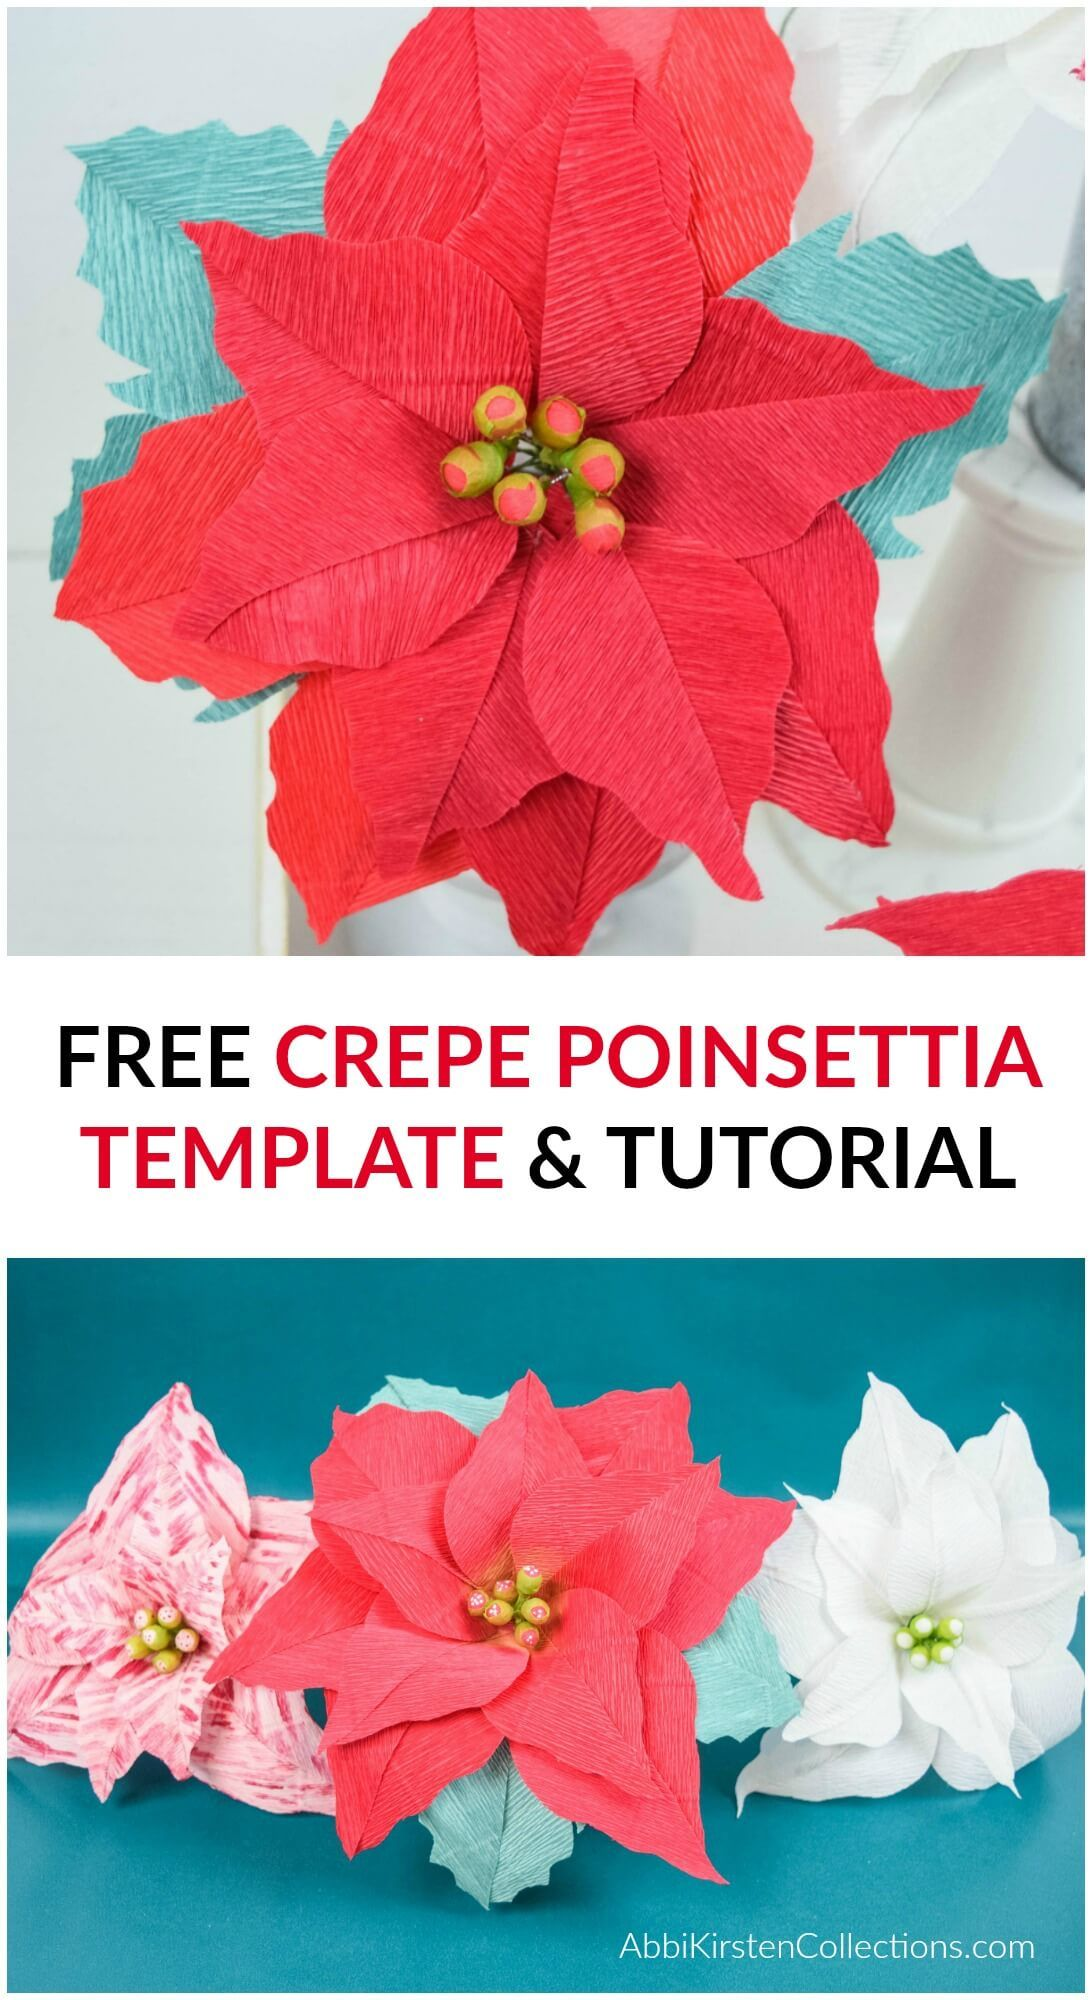 Crepe Paper Poinsettia Flowers Free Poinsettia Template And Tutorial In 2020 Paper Flower Decor Paper Flower Supplies Paper Flowers Craft